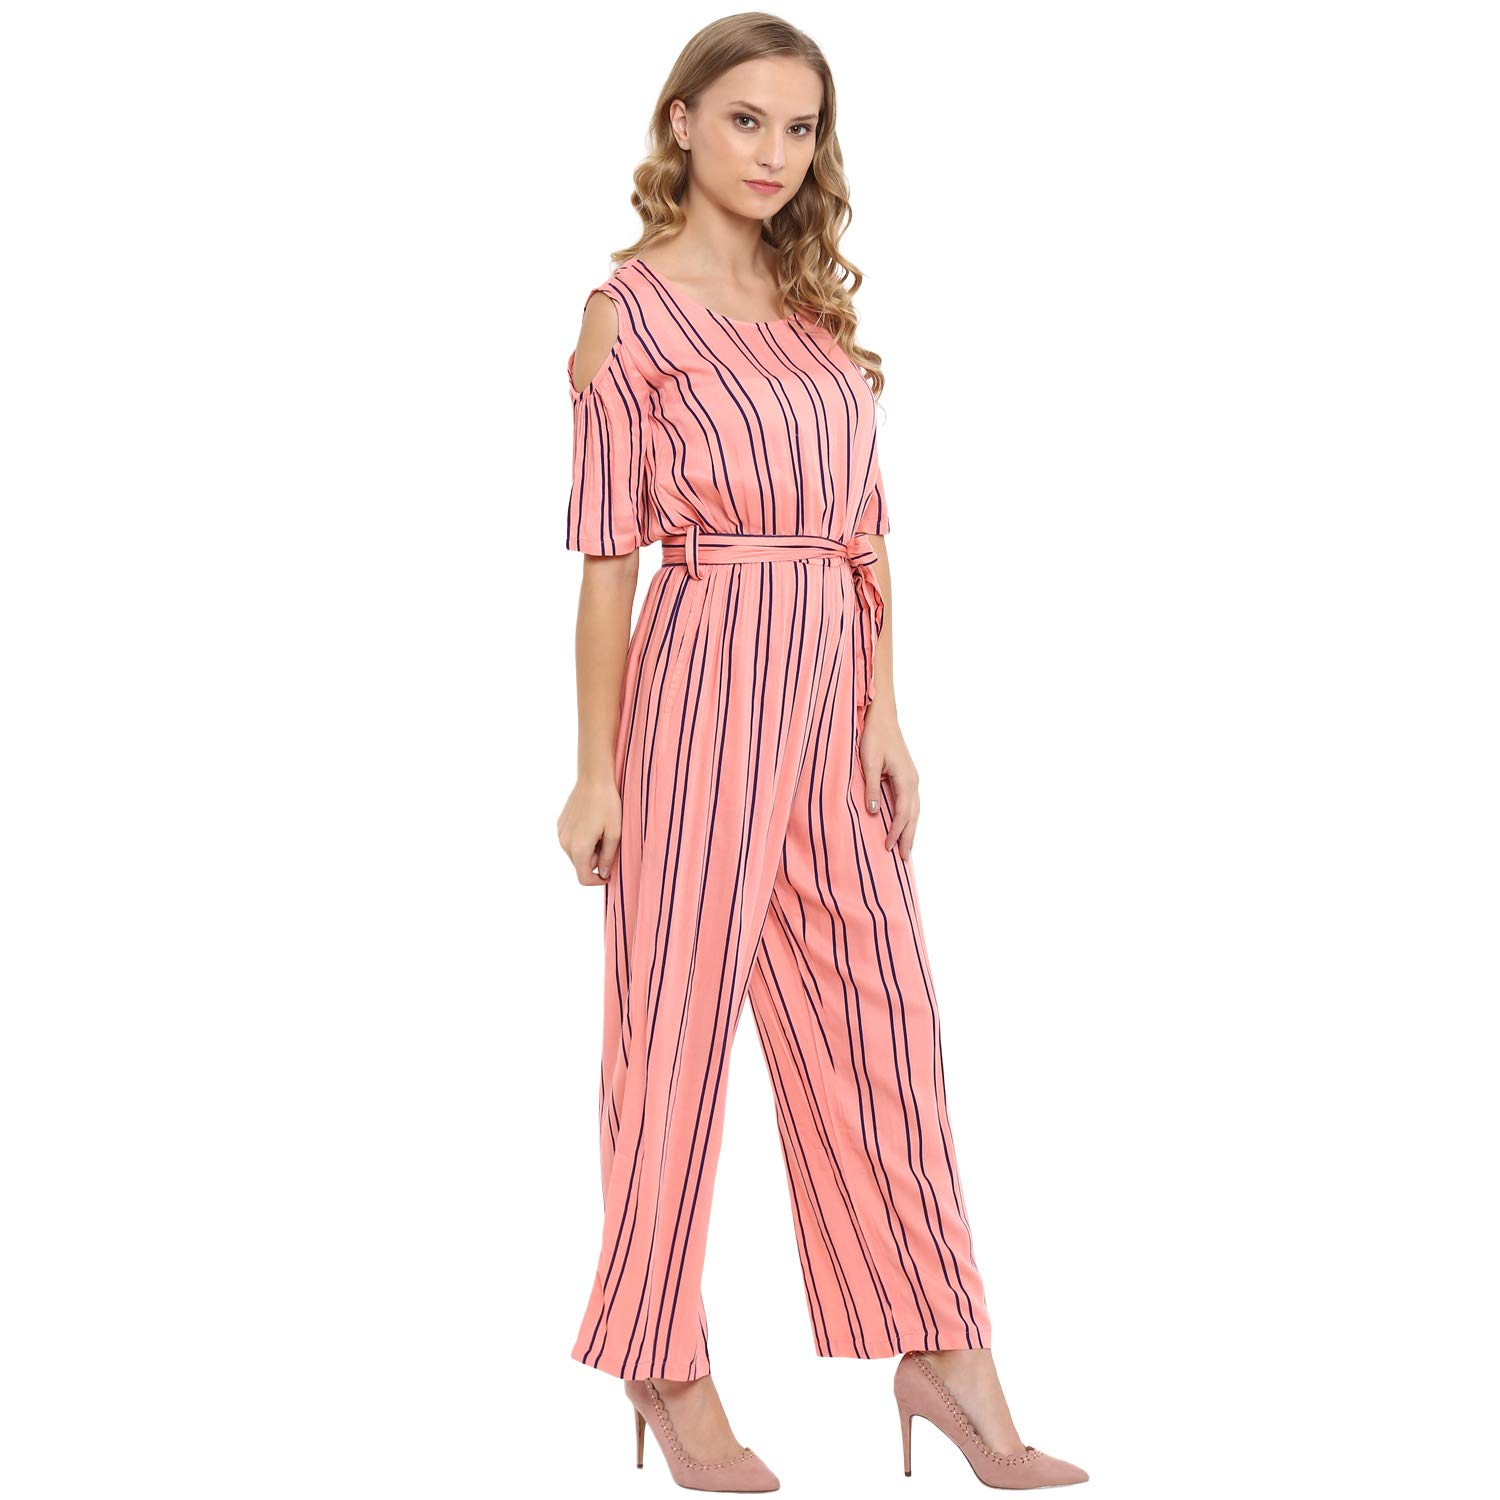 865779d7a3 Molly&Michel Women's Casual Half Sleeves Striped Jumpsuit for Girl:  Amazon.in: Clothing & Accessories